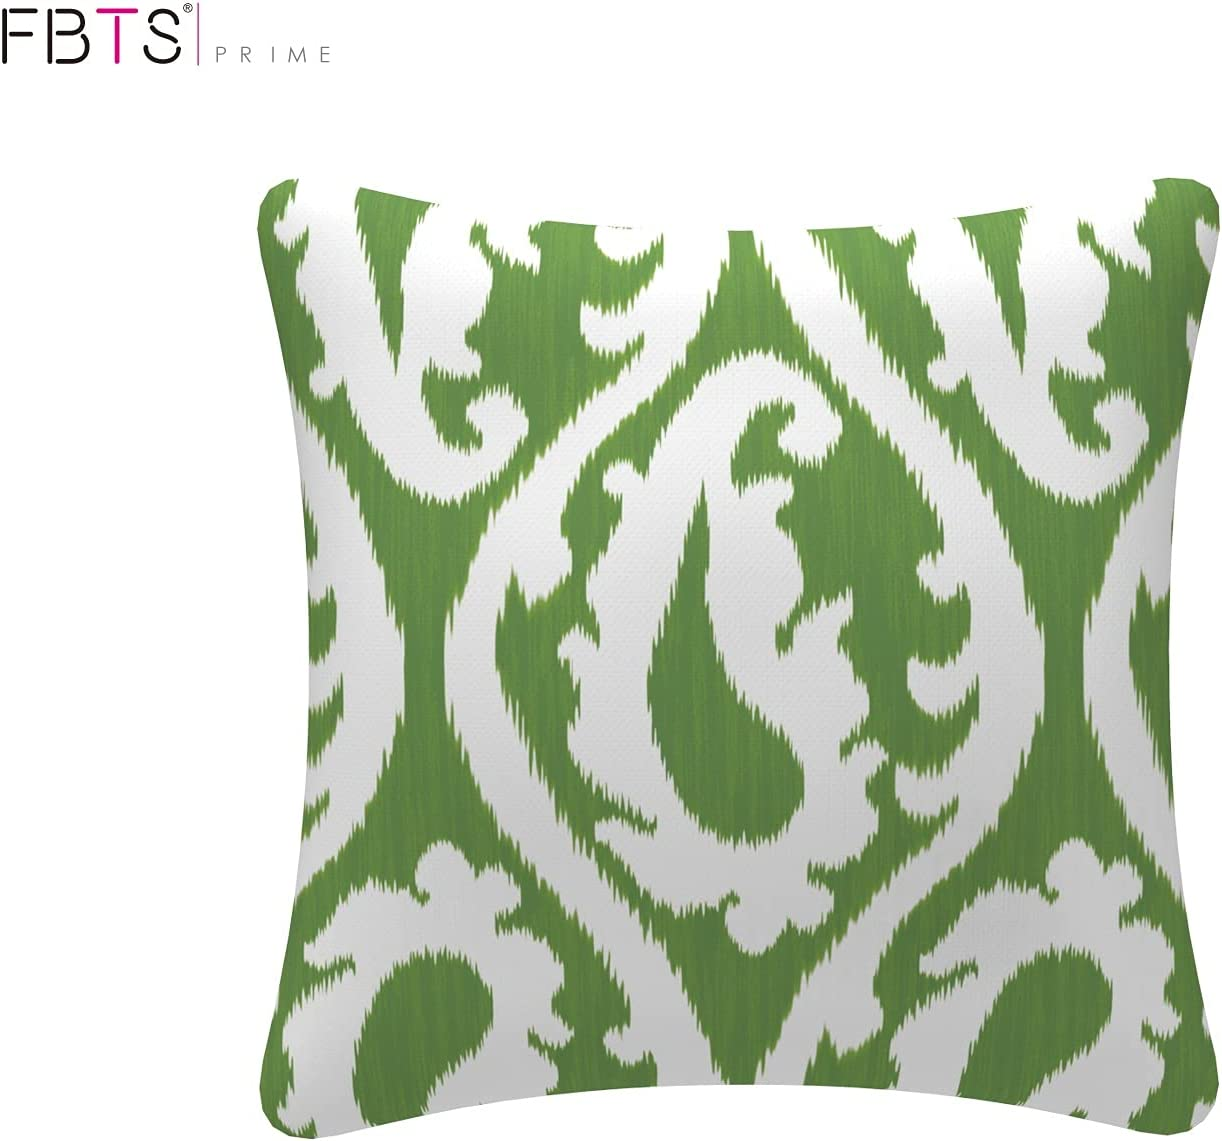 Buy FBTS Prime Outdoor Decorative Pillows with Insert Green ...